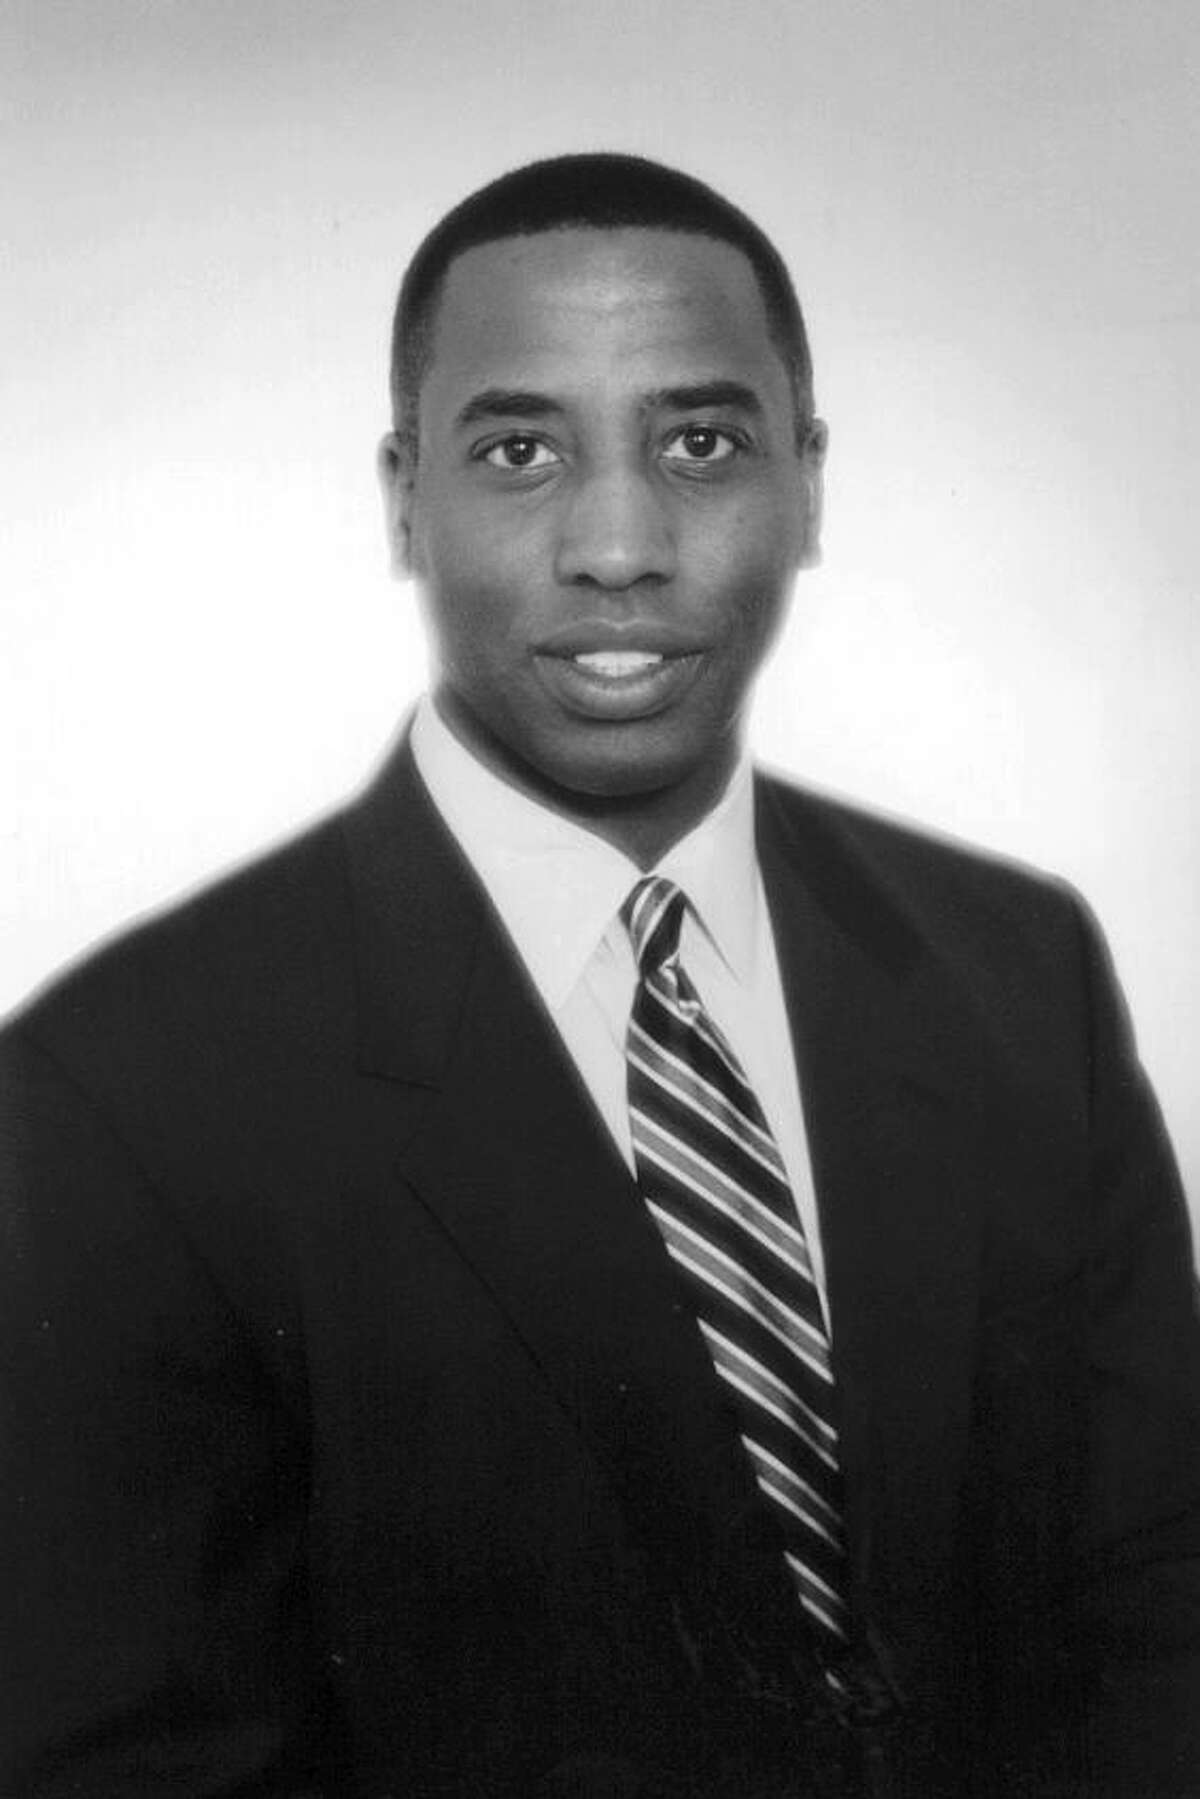 County Court Judge Michael Fields (also goes by Mike Fields) undated file photo provided by his office.